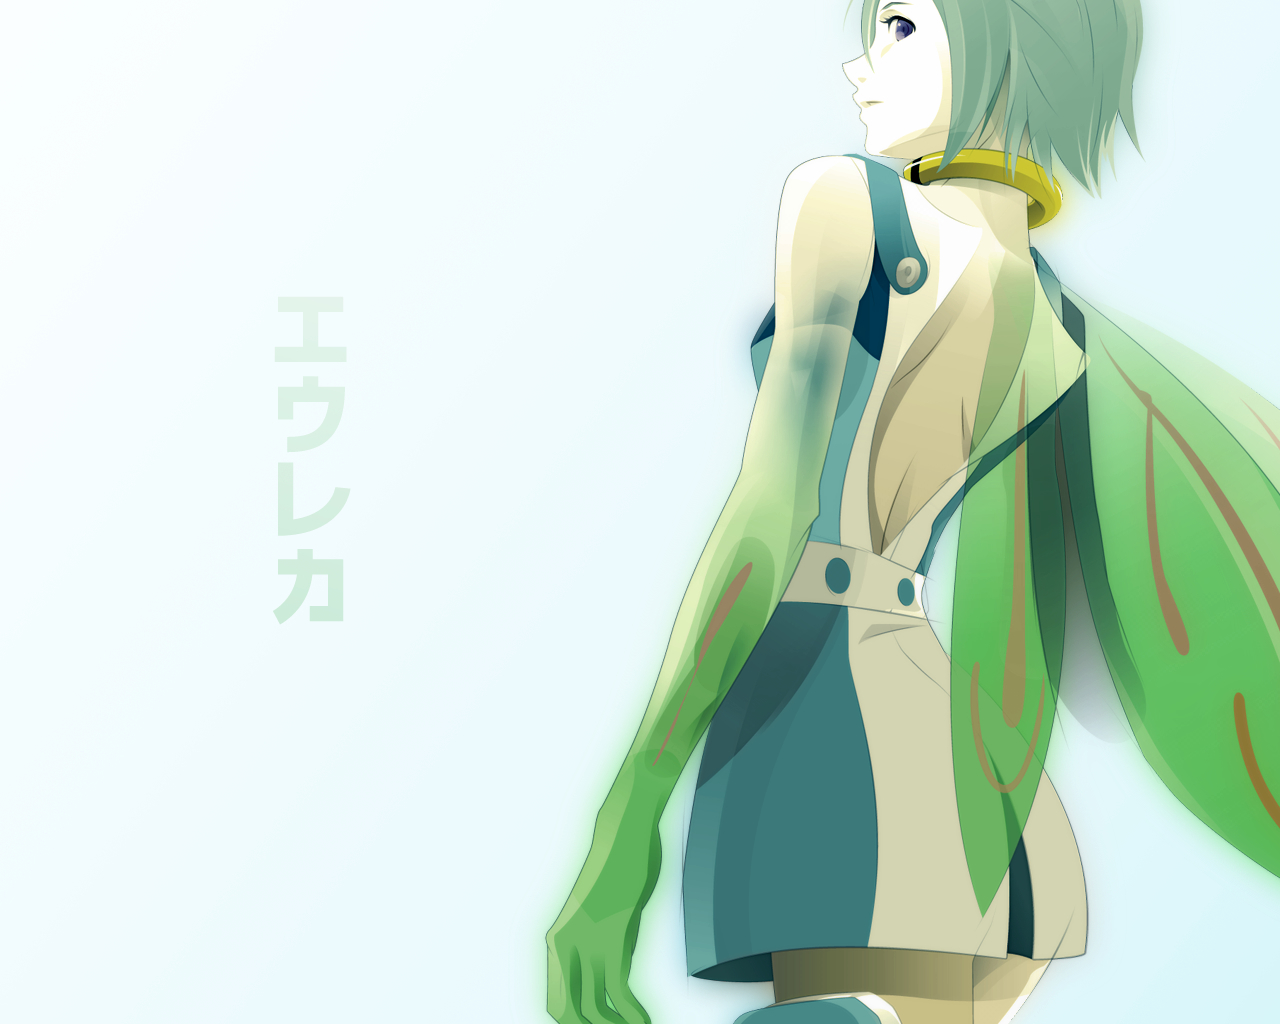 Eureka Seven Character Anime HD Wallpaper